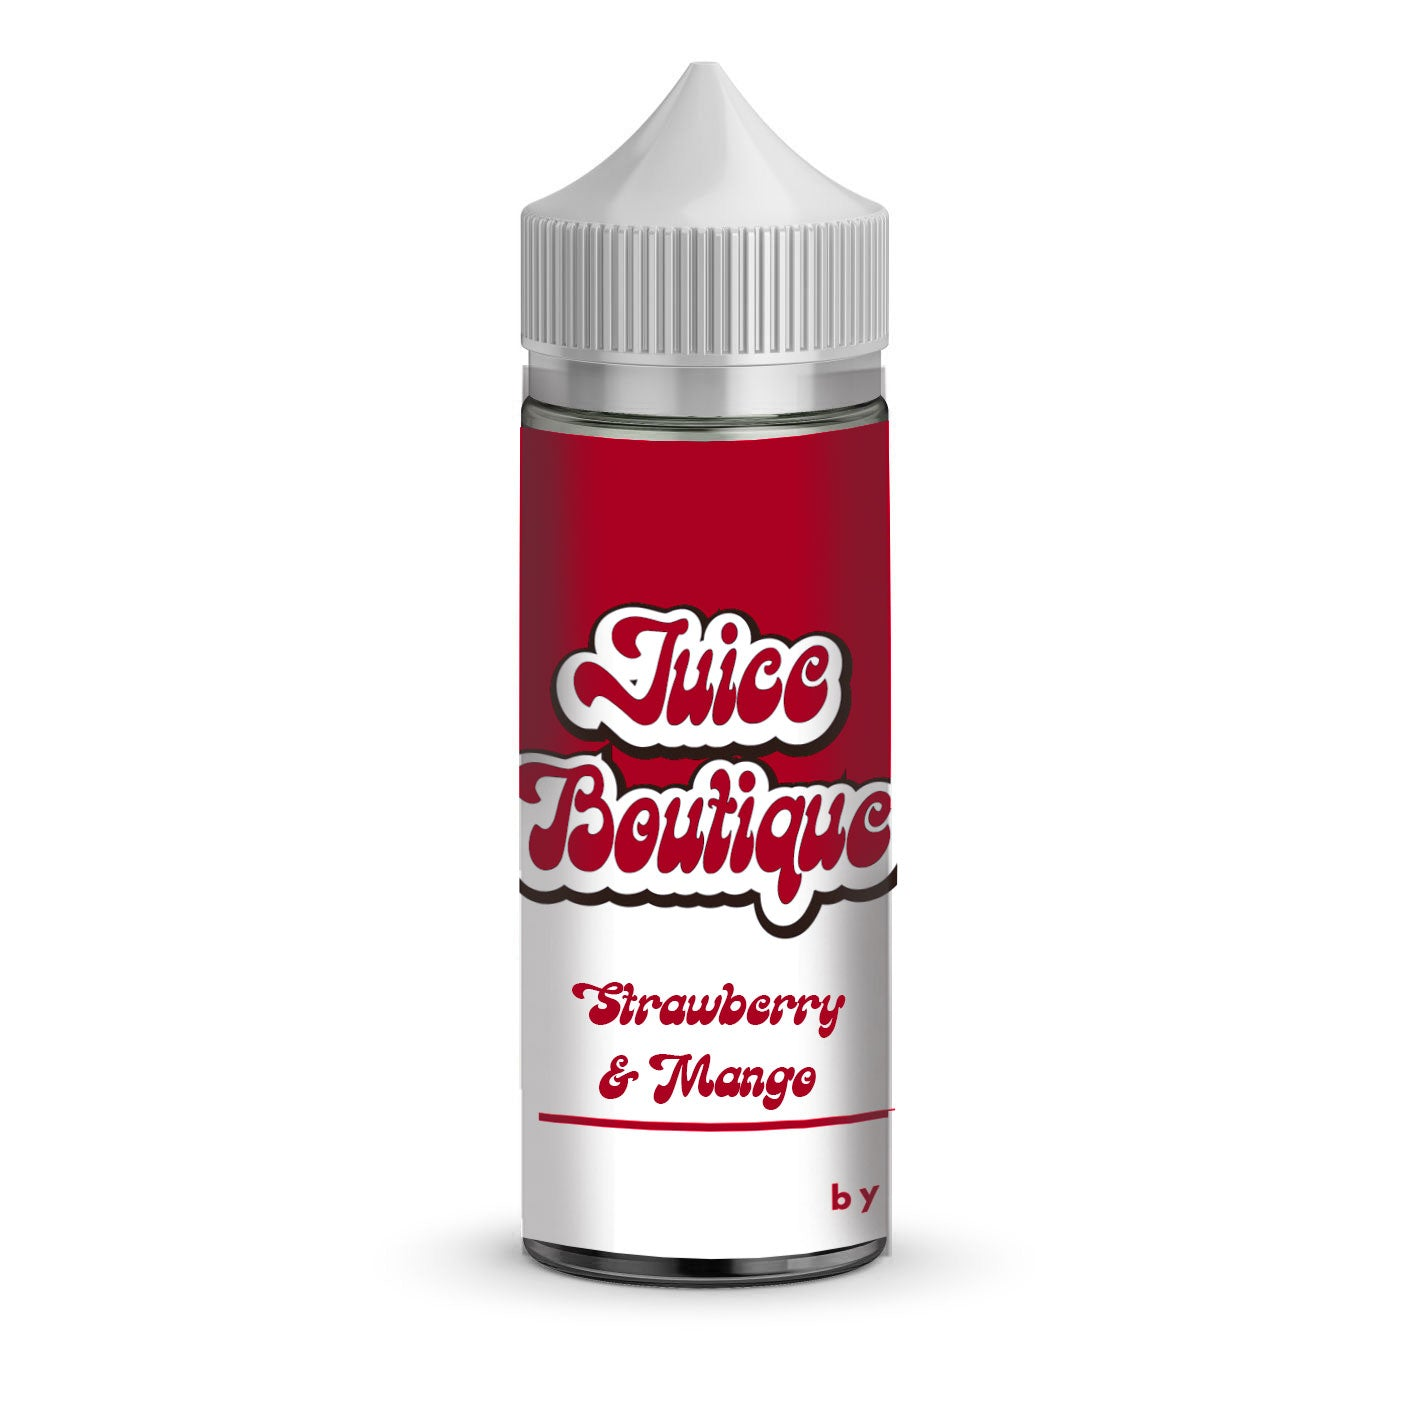 Juice Boutique Strawberry  & Mango By Hodges Short Fill E-Liquid (100ml)120ml